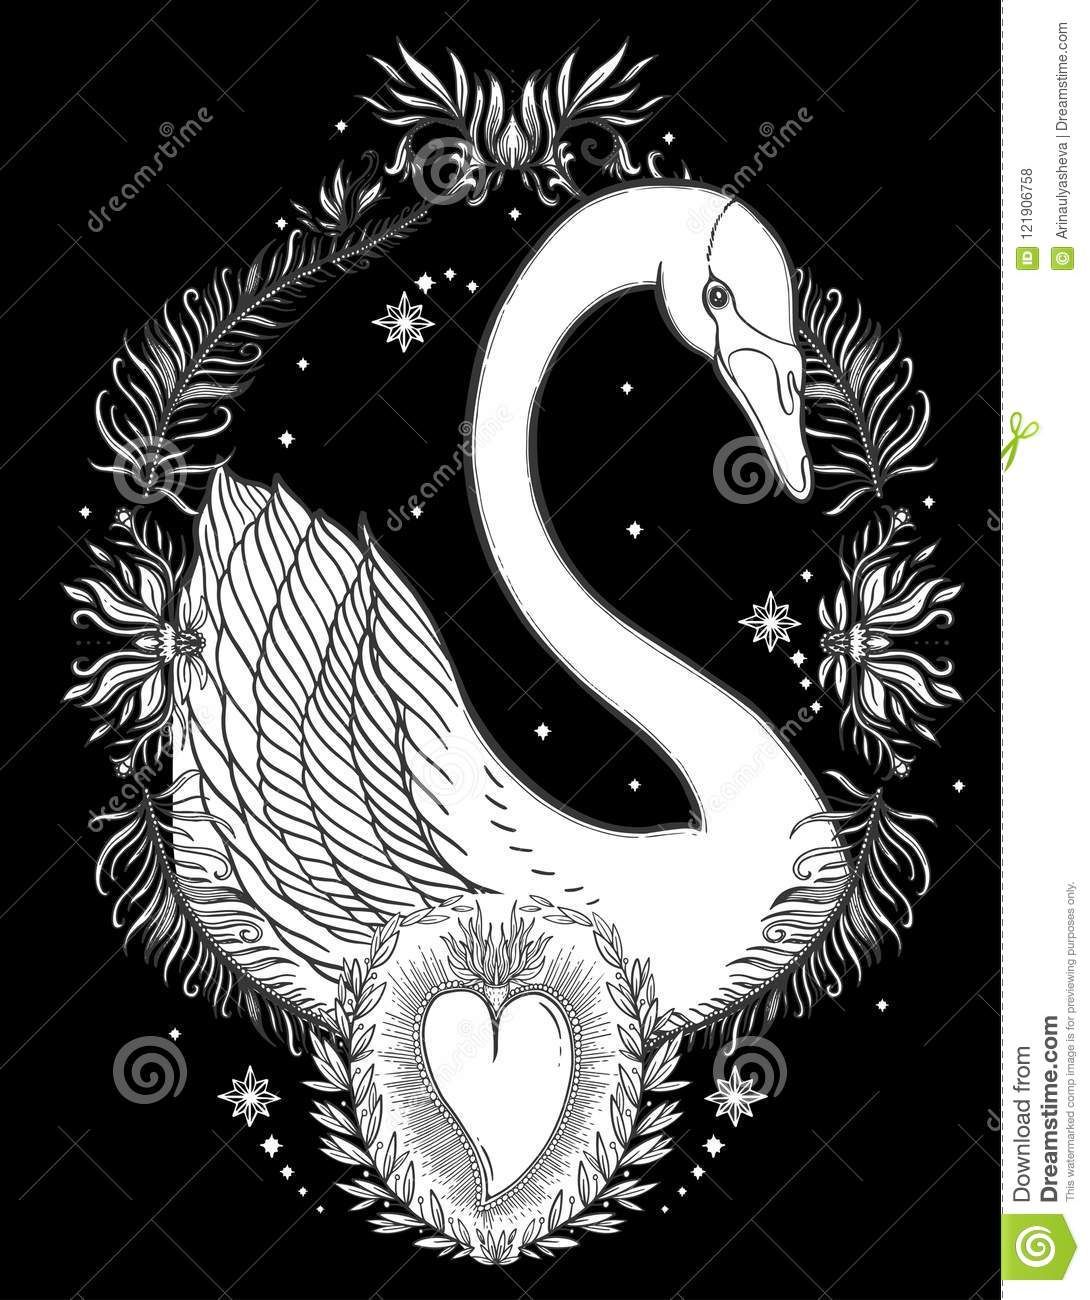 Sketch Graphic Illustration Beautiful Swan Sun Fairytale Character